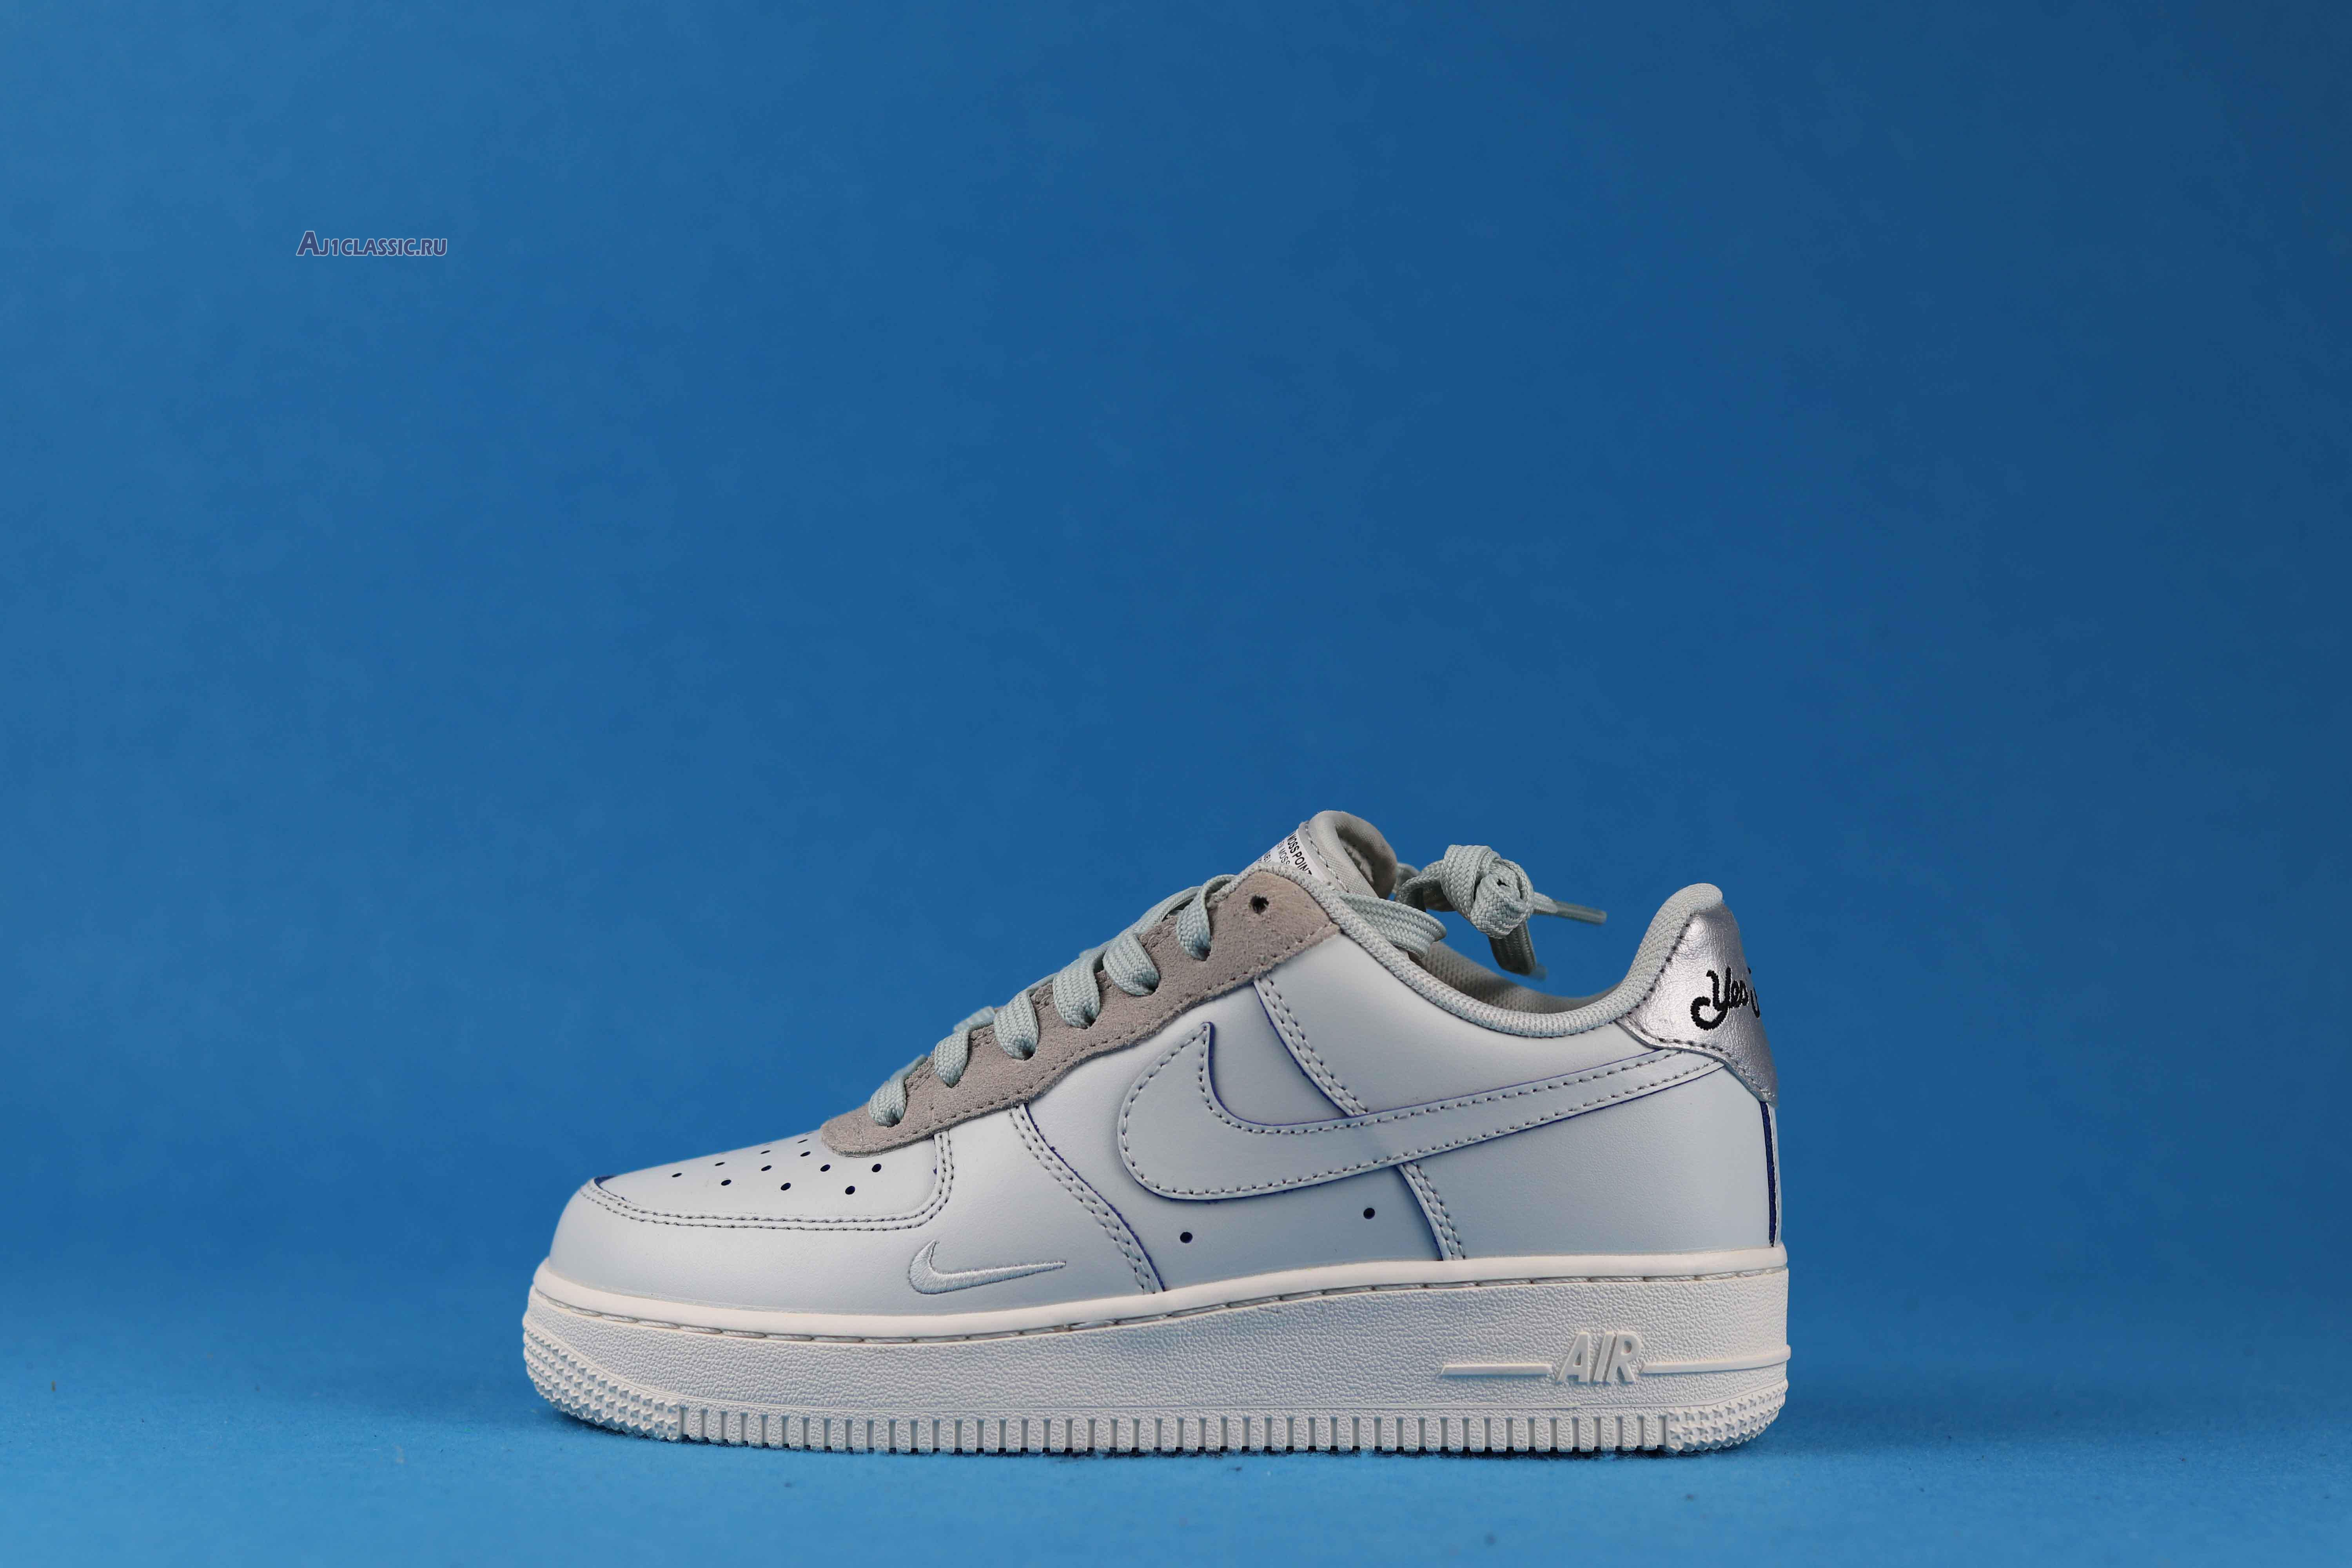 """Devin Booker x Nike Air Force 1 Low LV8 """"Moss Point"""" PE CJ9716-001"""